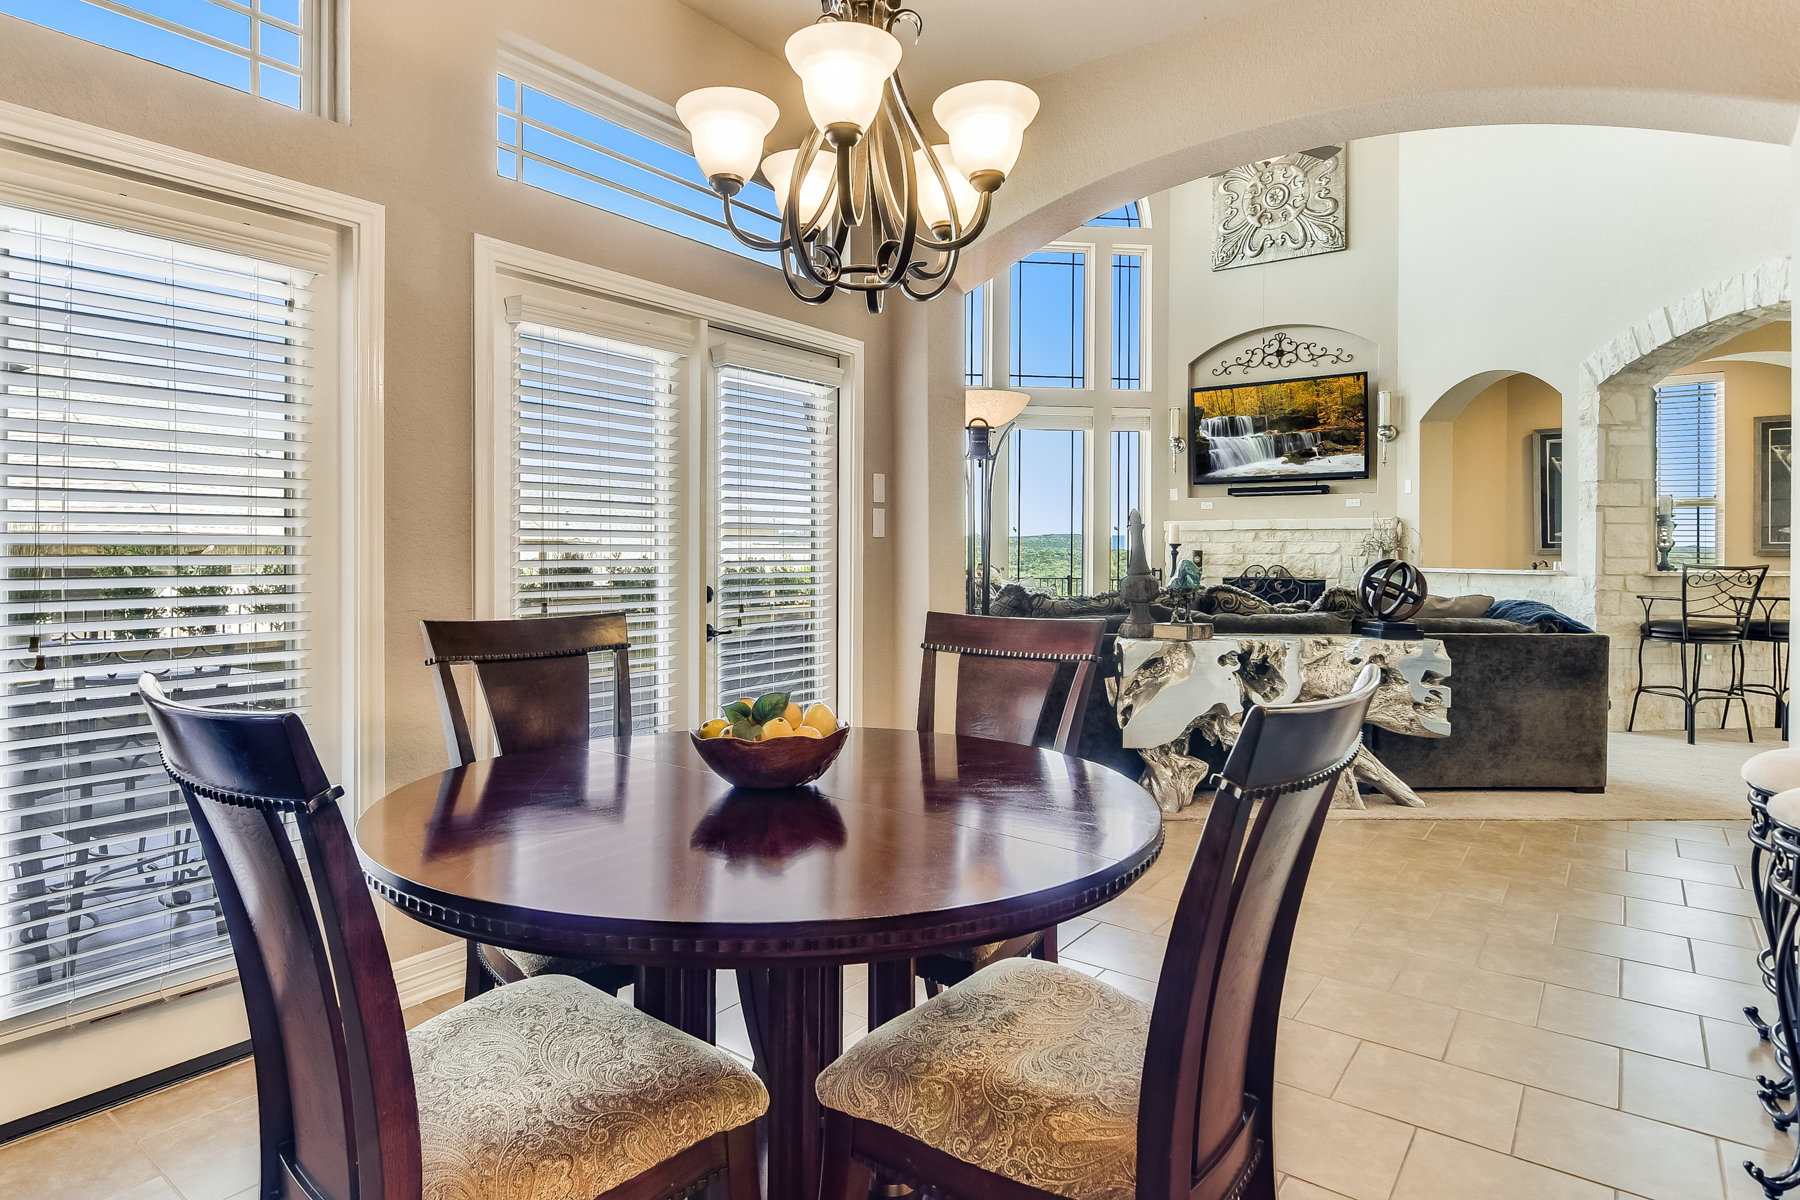 Single Family Home for Sale at Sunset Views in The Ridge at Sonoma Verde 18415 Branson Falls San Antonio, Texas 78255 United States